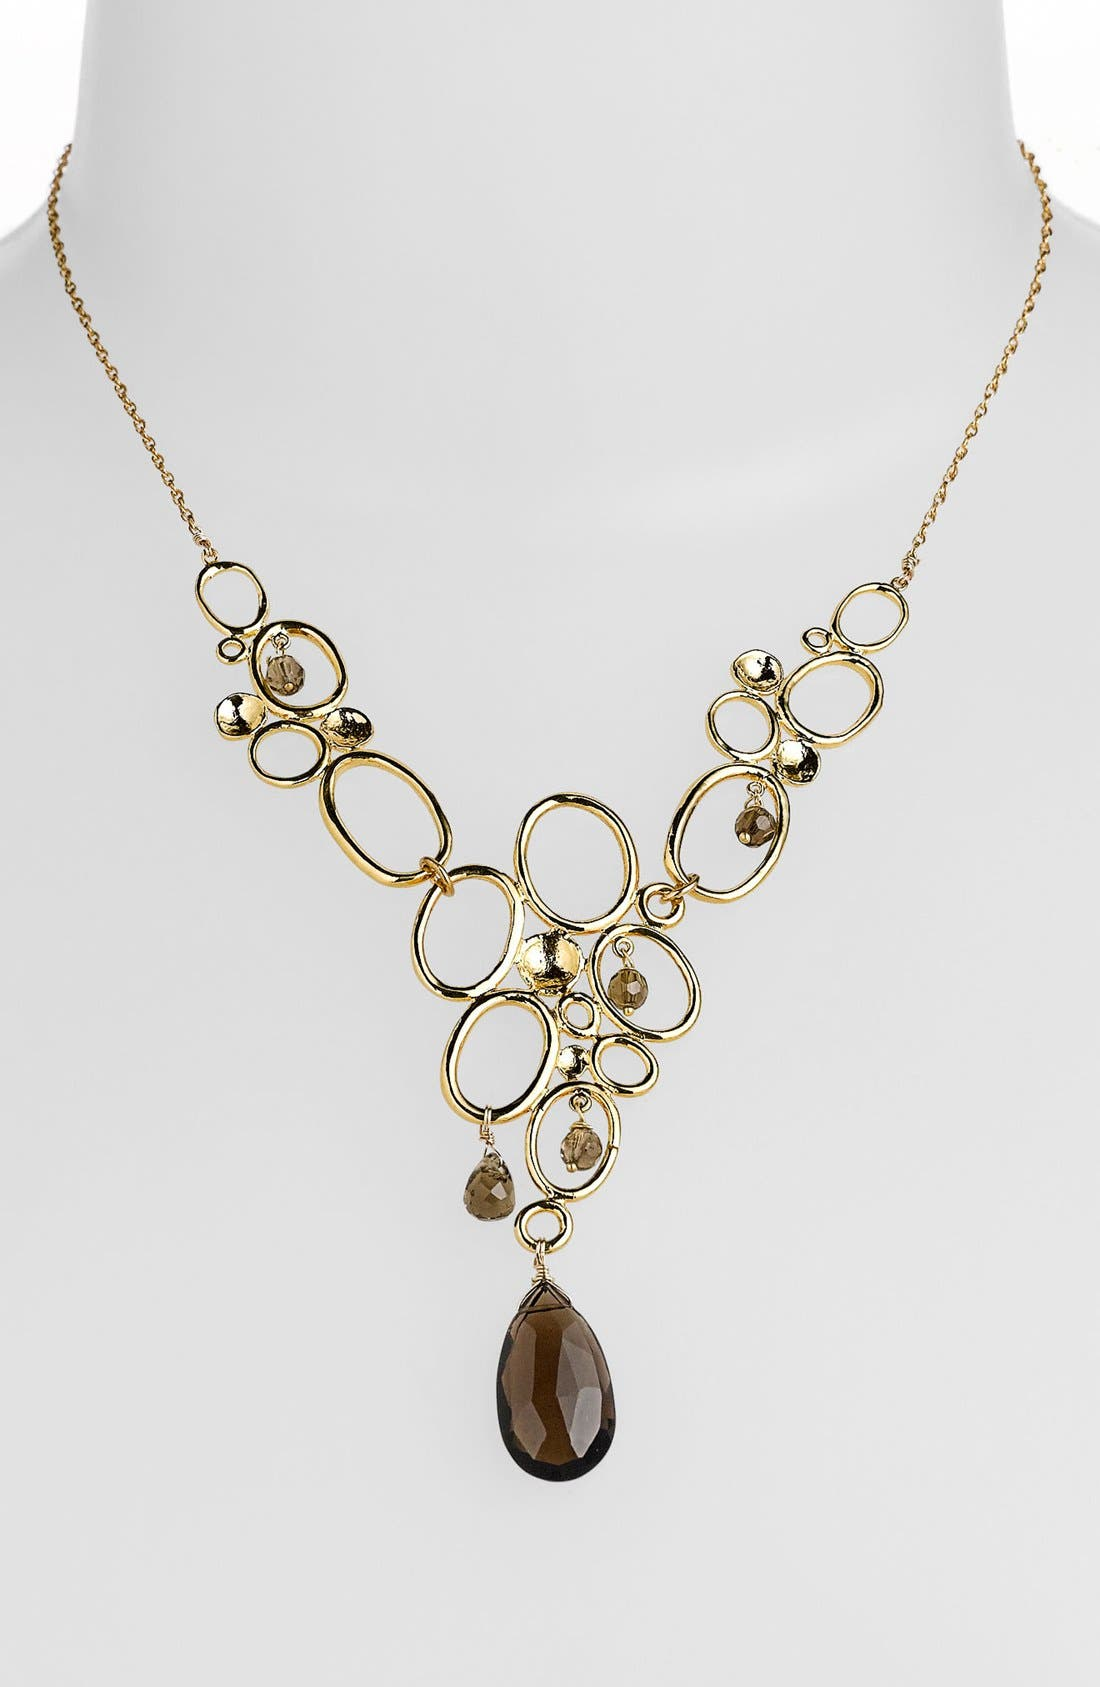 Alternate Image 1 Selected - Alexis Bittar 'Elements' Bib Necklace (Nordstrom Exclusive)